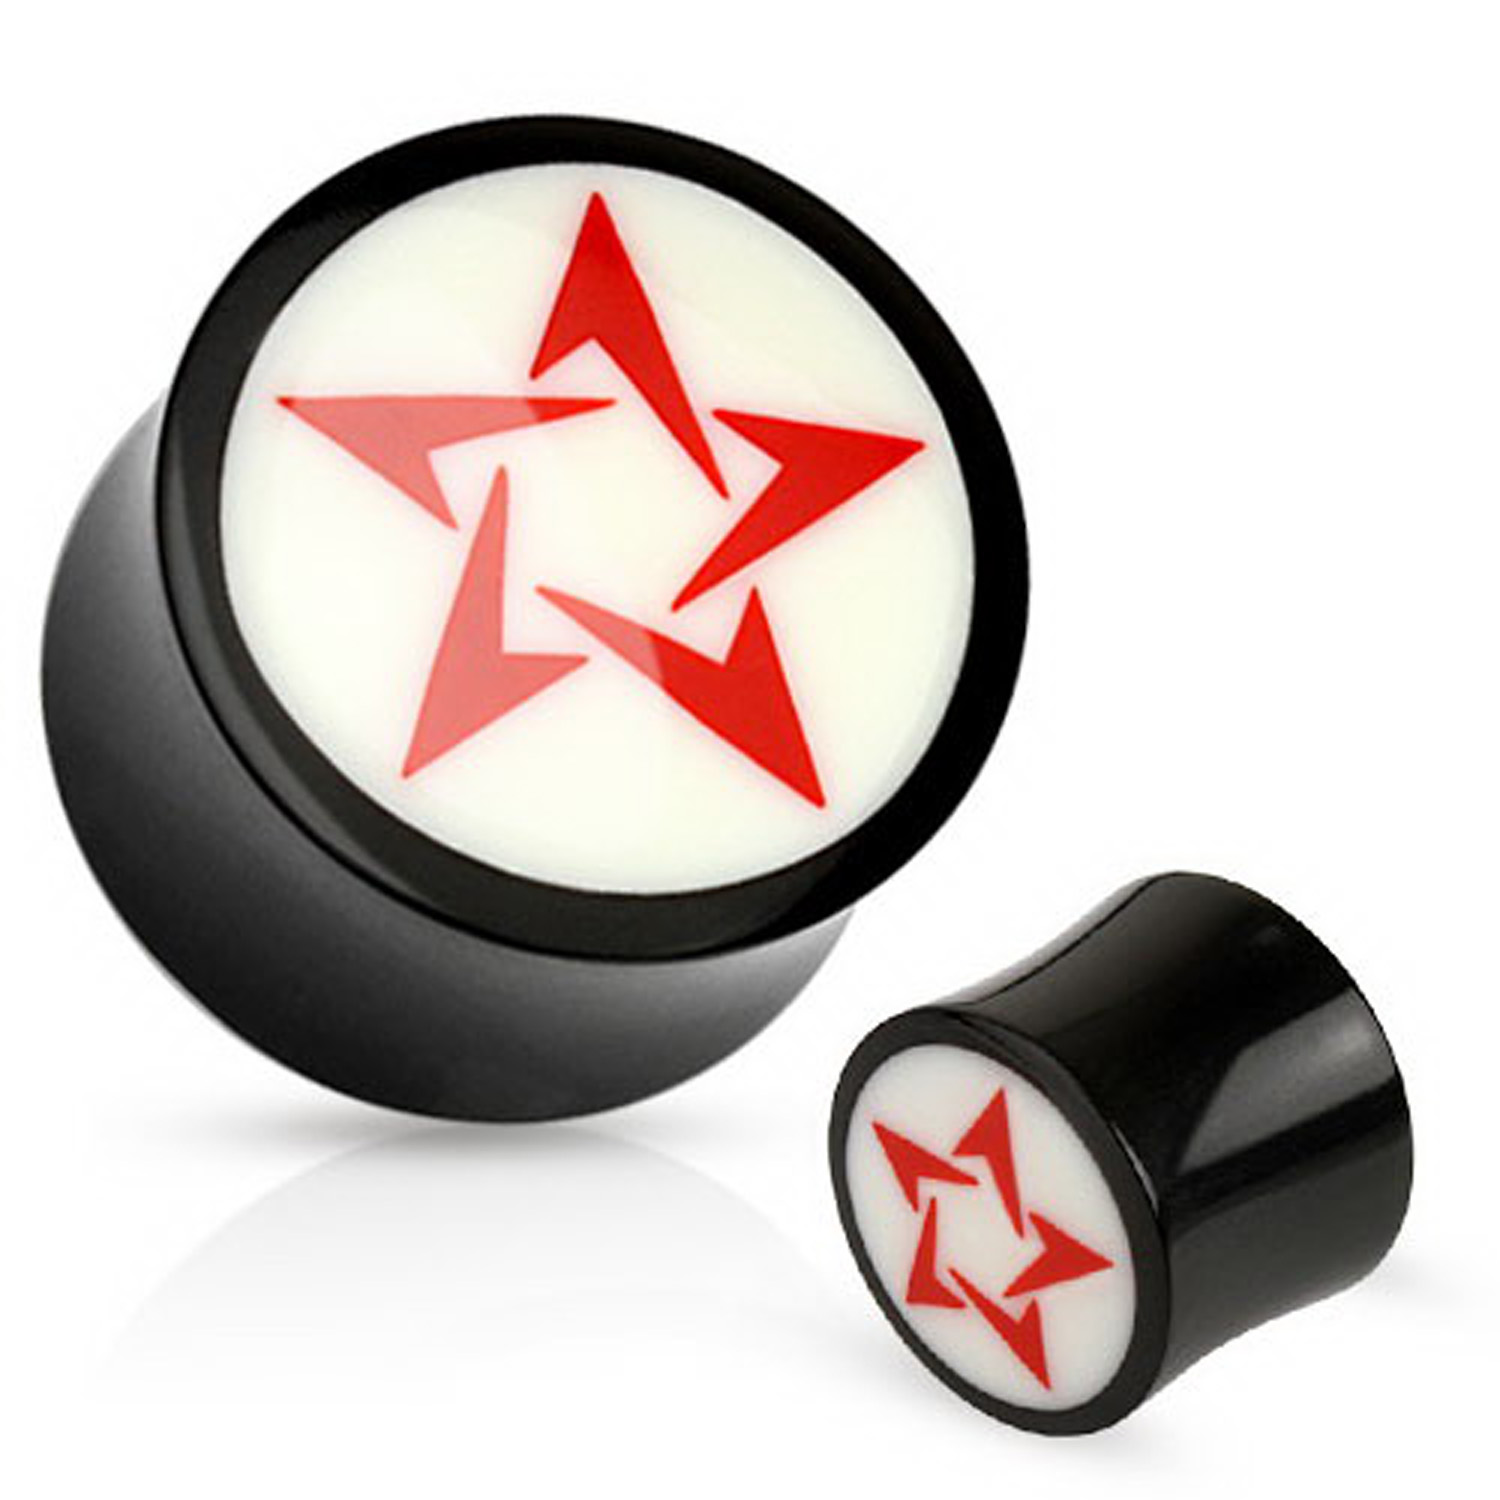 Red Star On White & Black Double Flared Ear Plug (25mm, 1 Inch) - 2 Piece